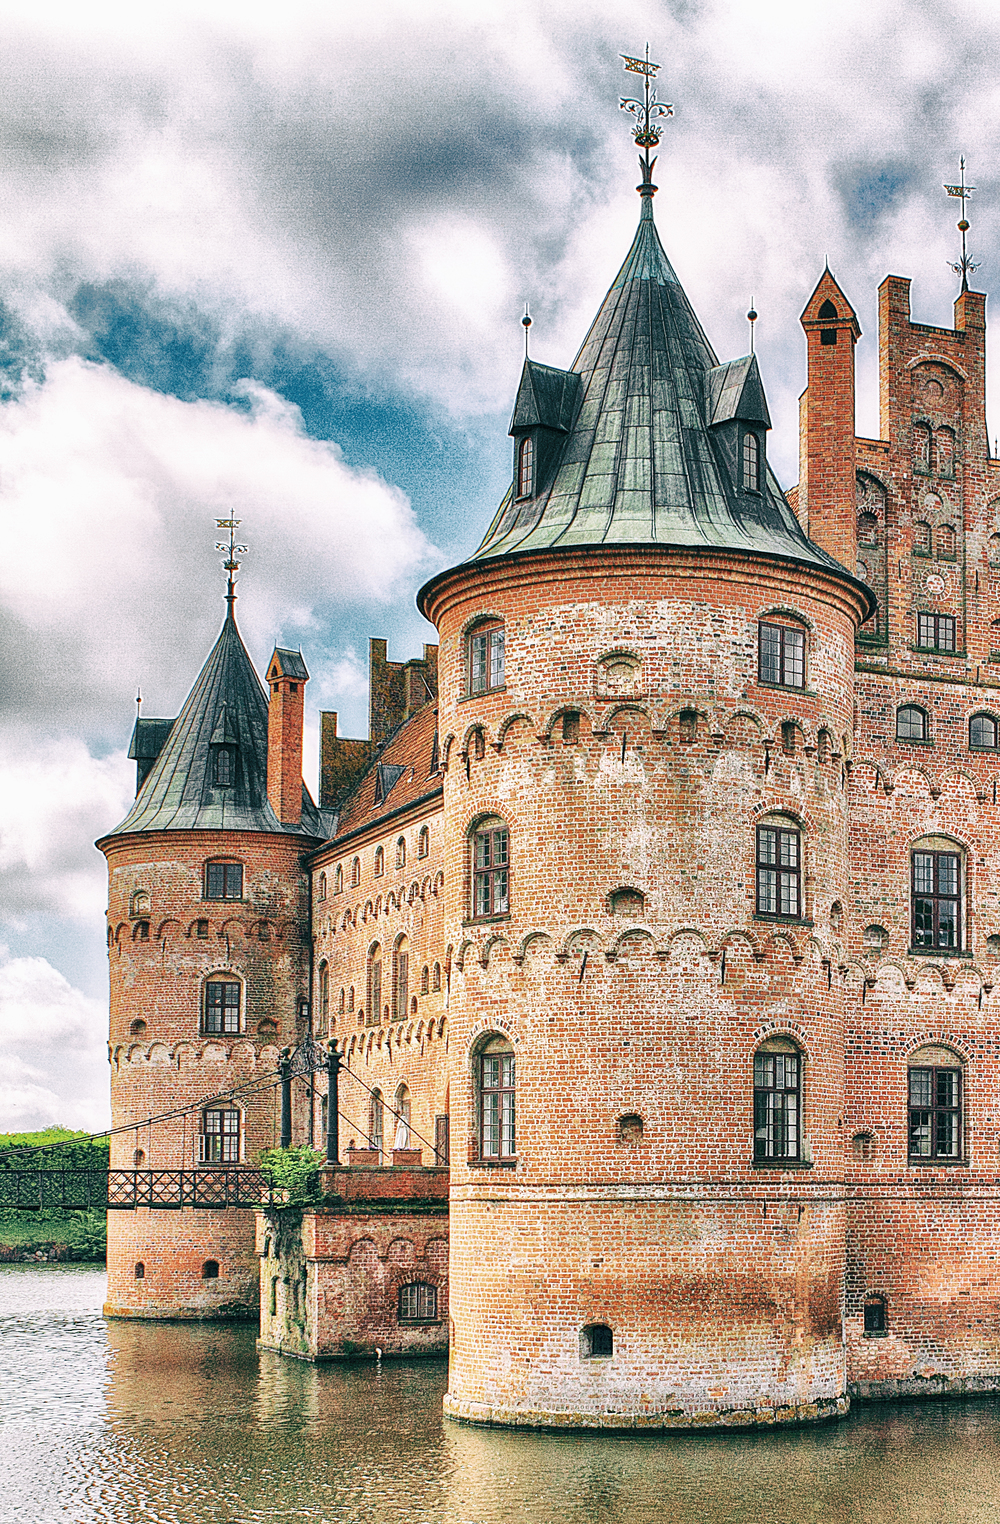 Keeps the enemy out Read about Egeskov Castle Comments